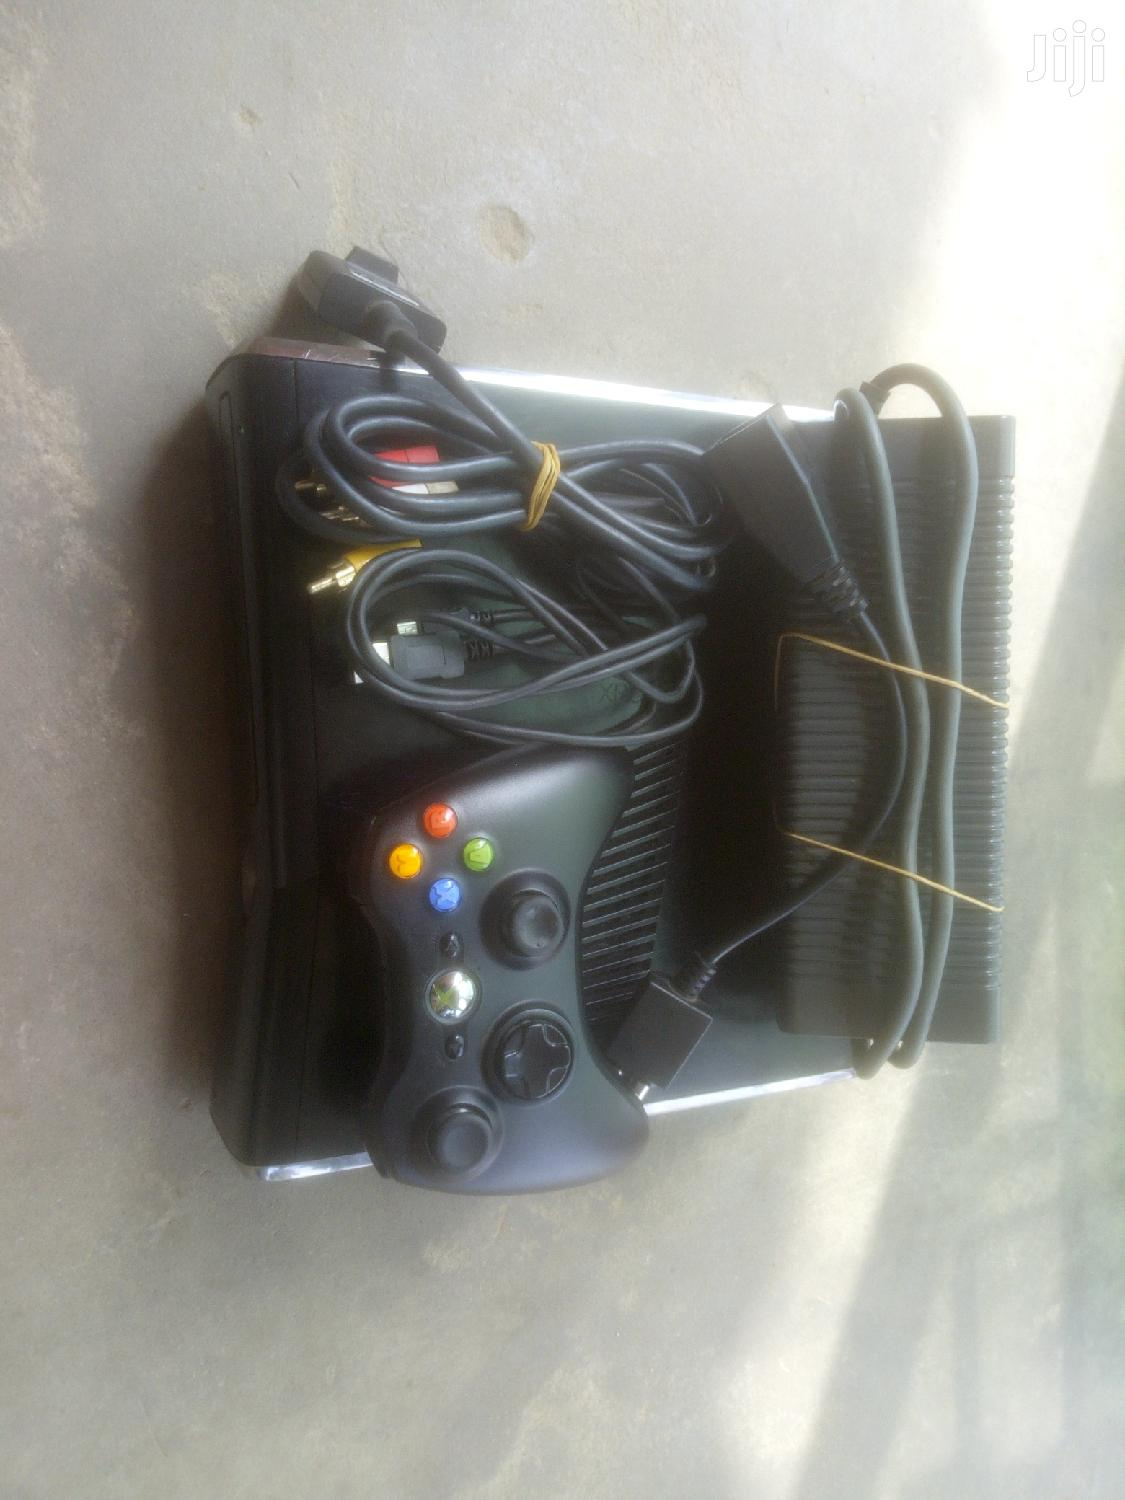 Slim Latest Xbox 360, Loaded With 14 Games | Video Game Consoles for sale in Accra Metropolitan, Greater Accra, Ghana